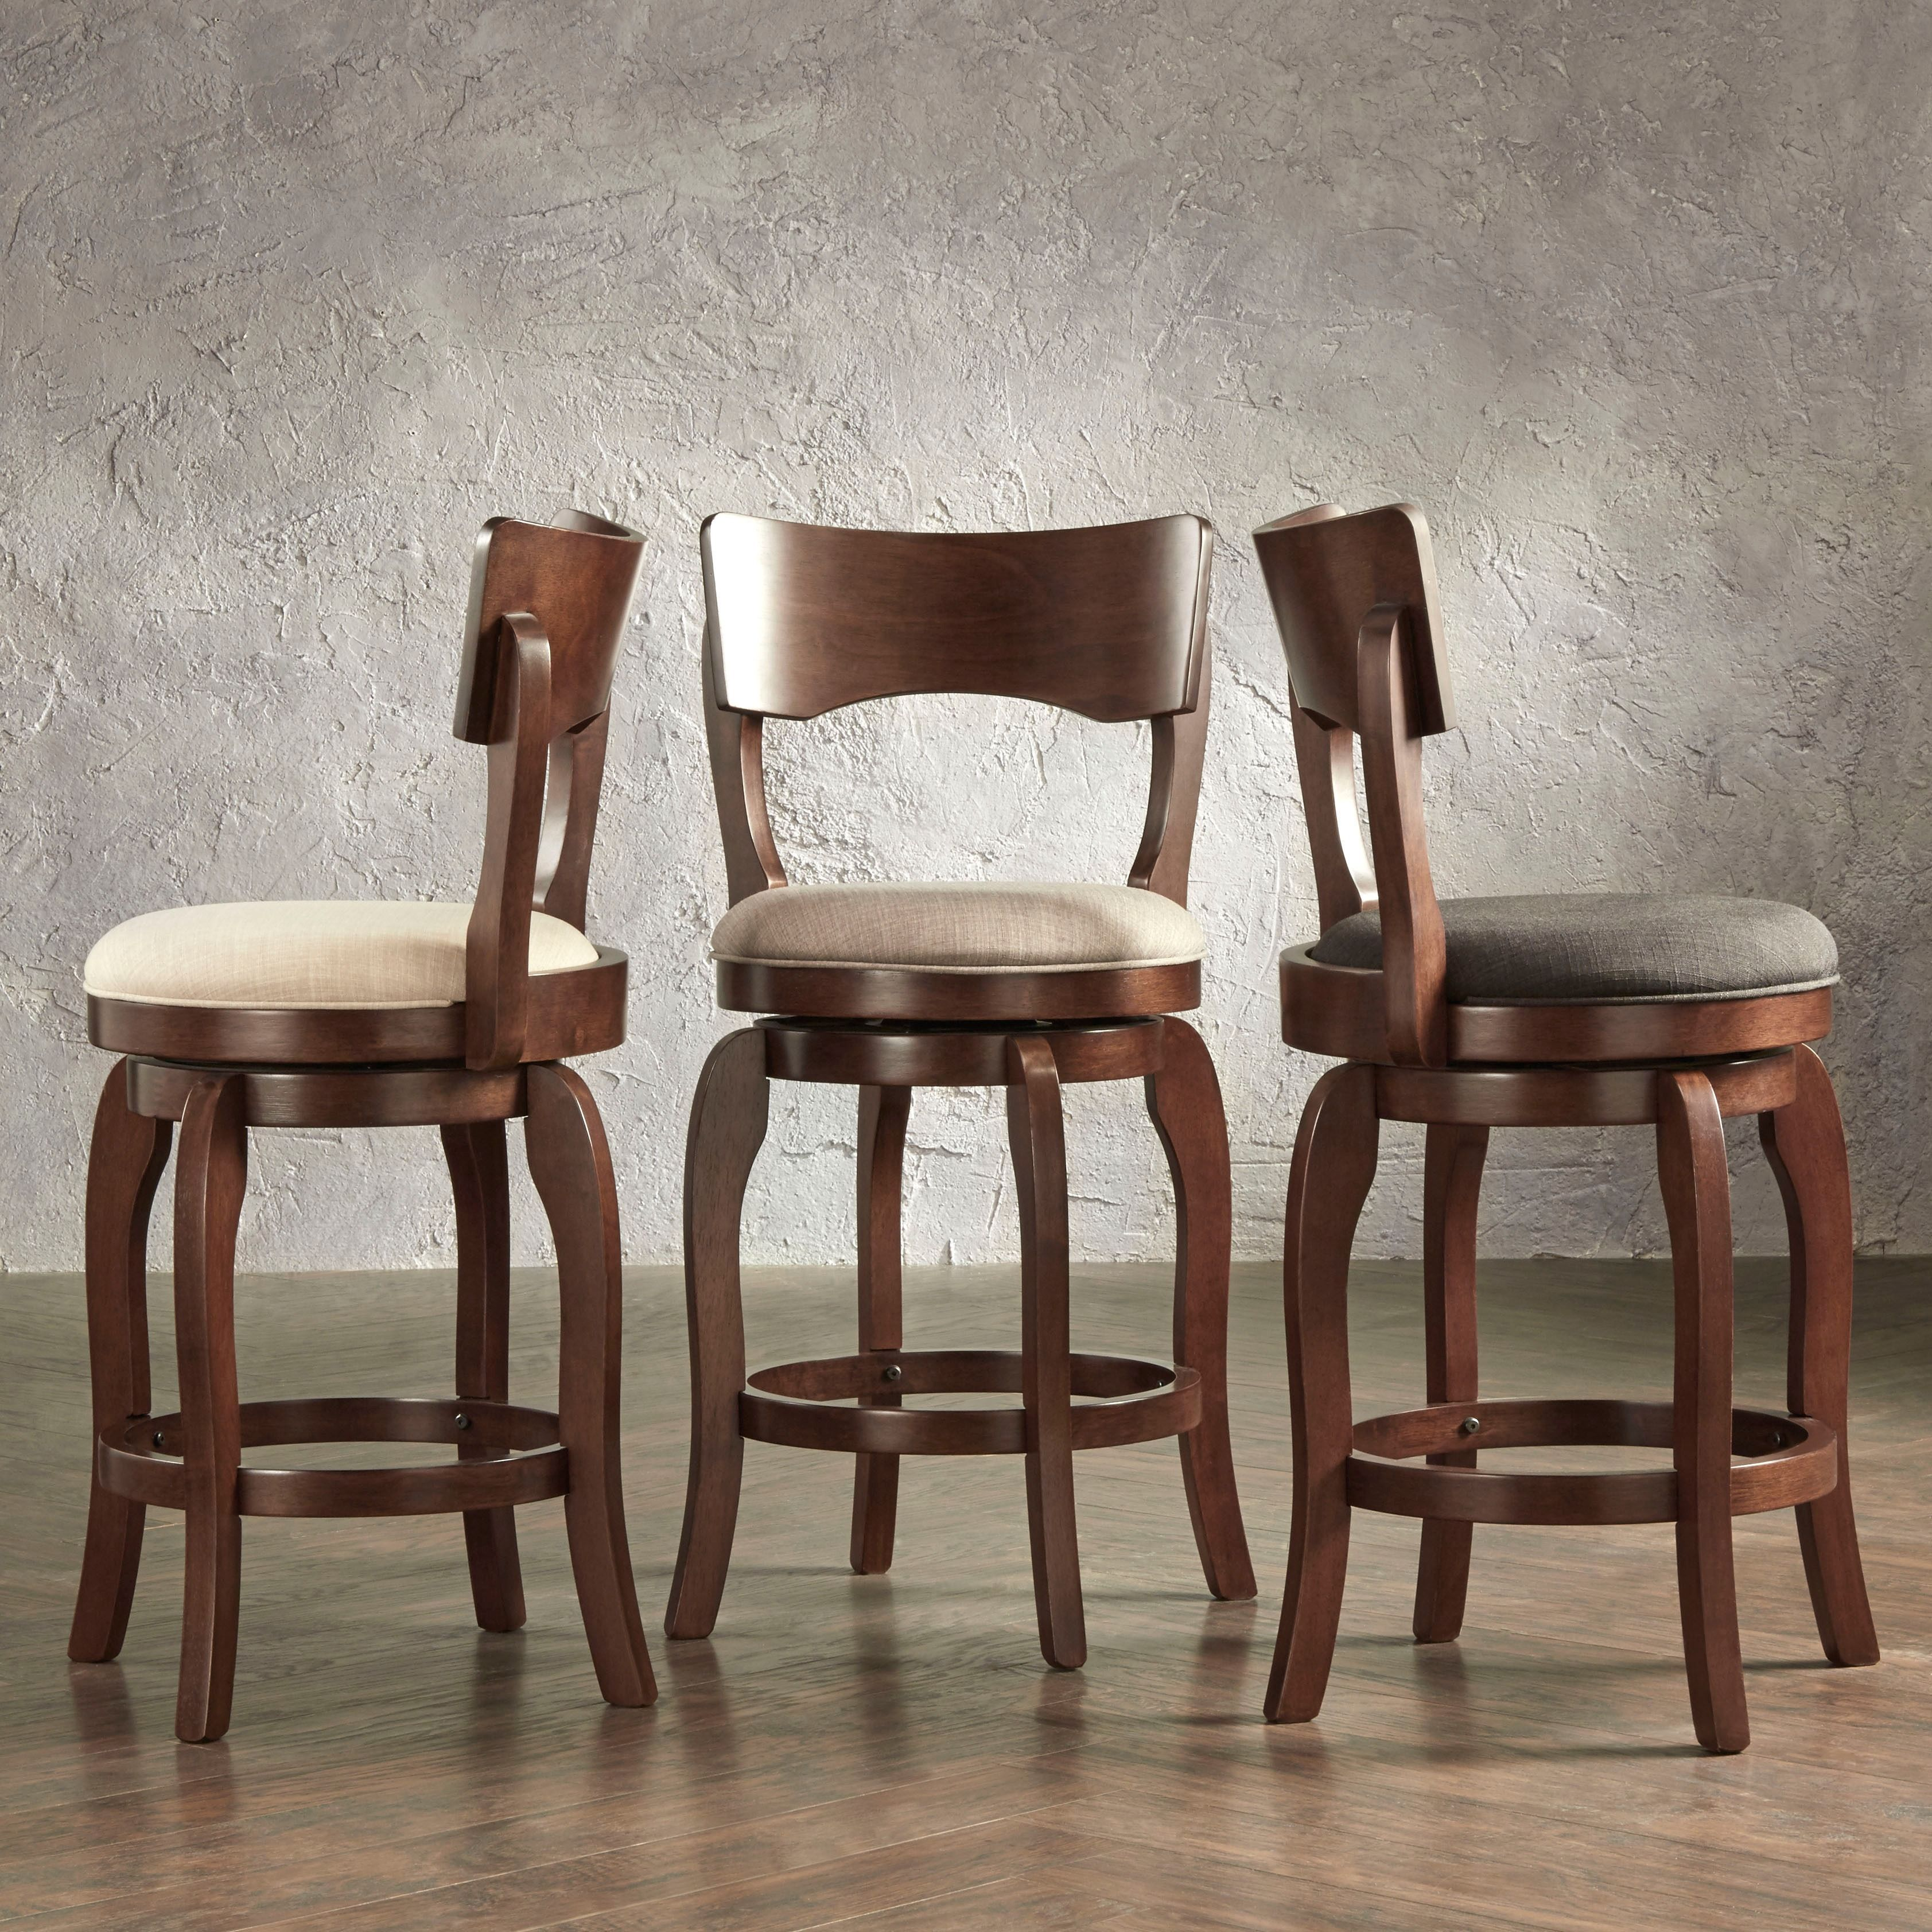 Lyla Swivel inch Brown Oak Counter Height Linen Barstool by TRIBECCA HOME by Tribecca Home